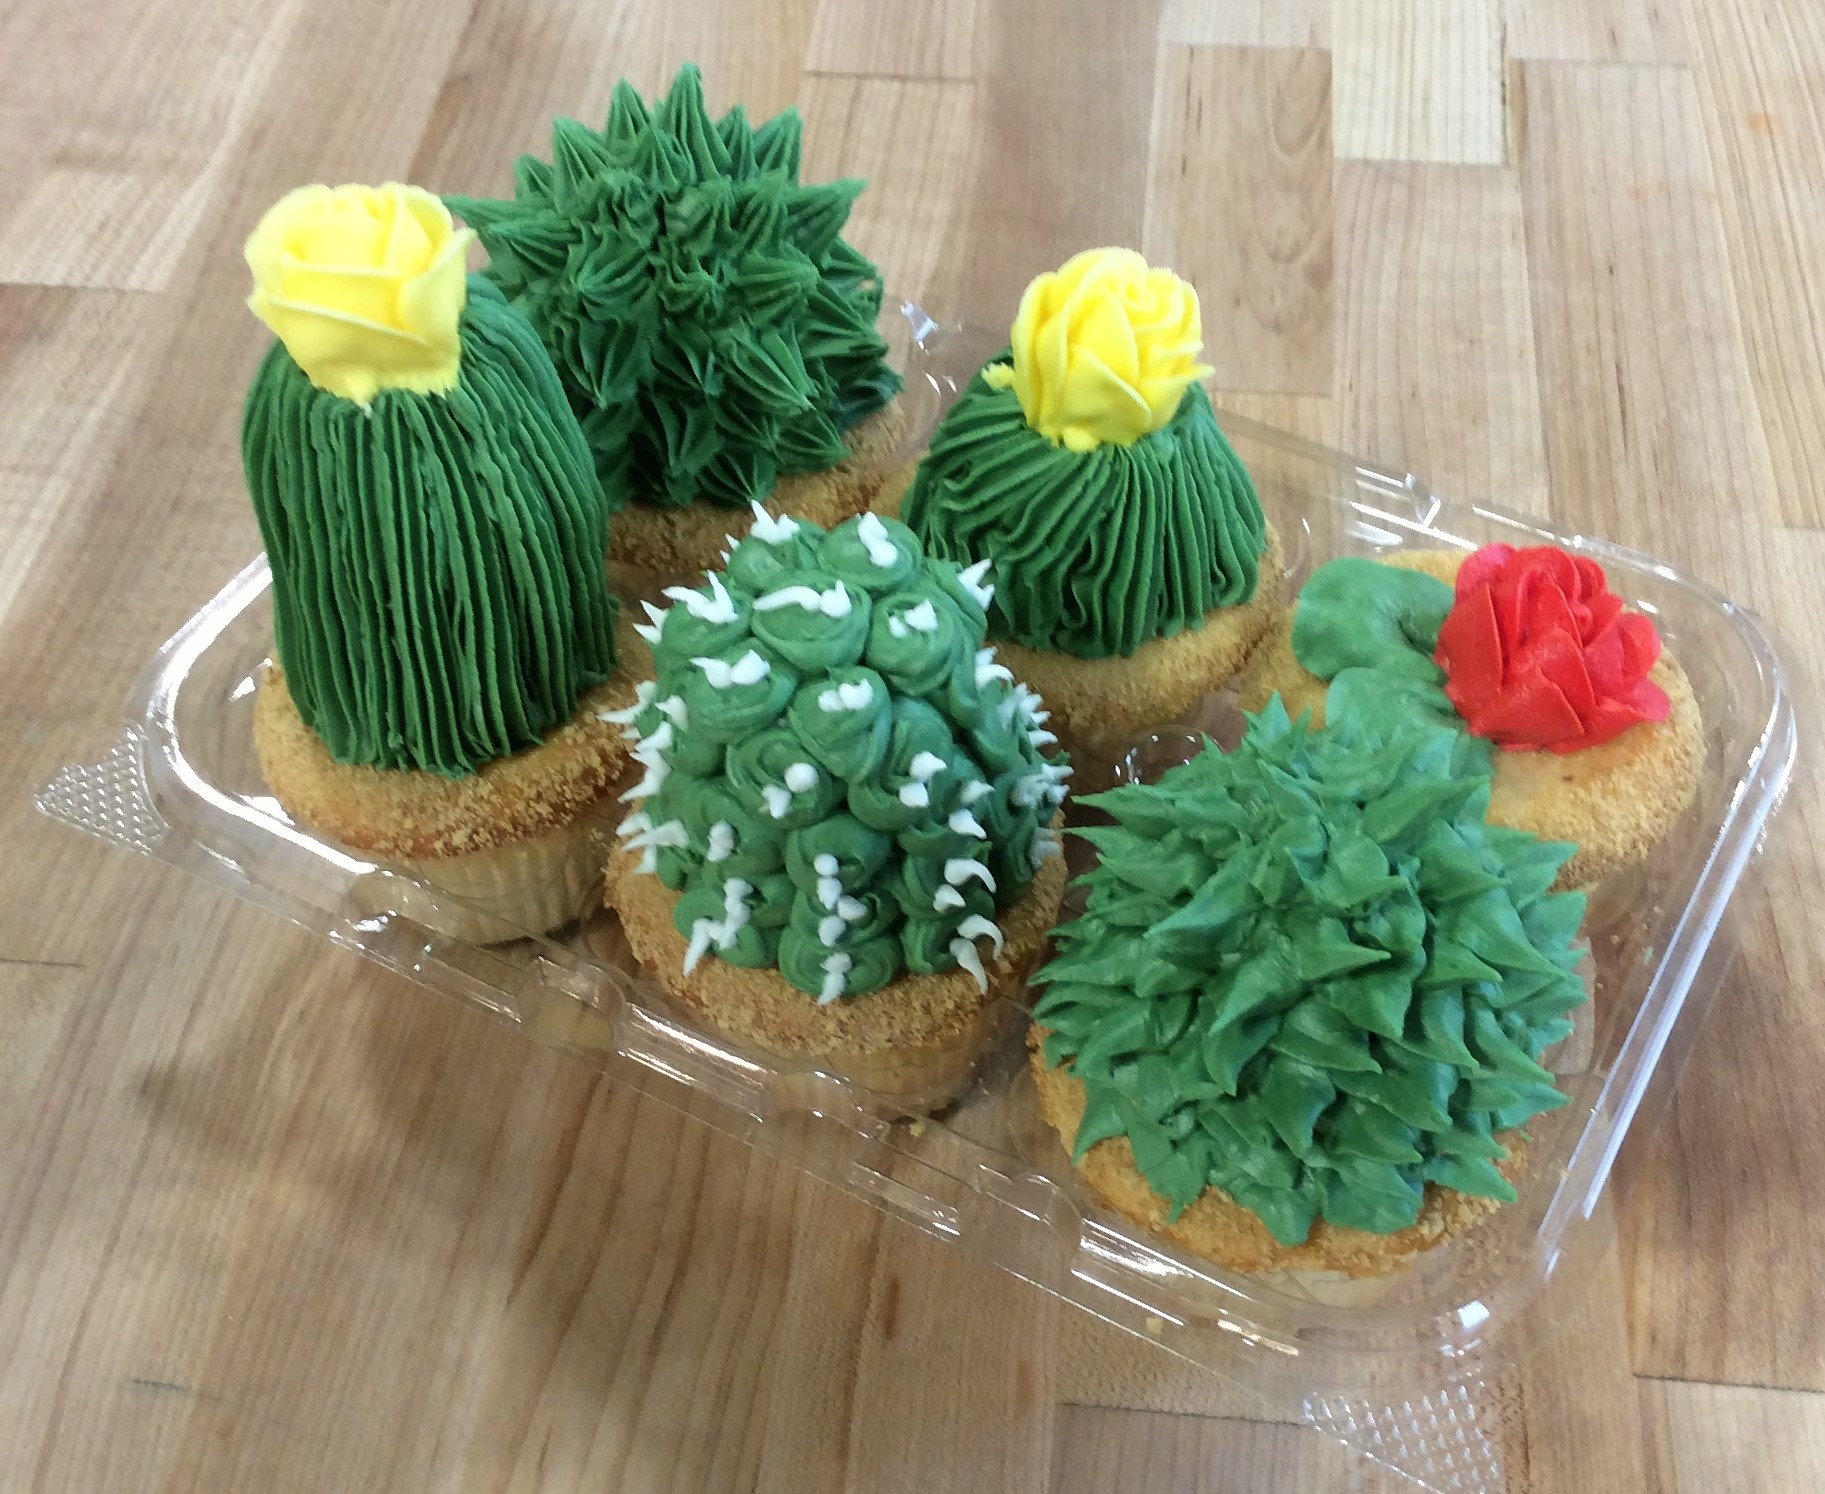 Cupcakes with Tall Cactus Decoration